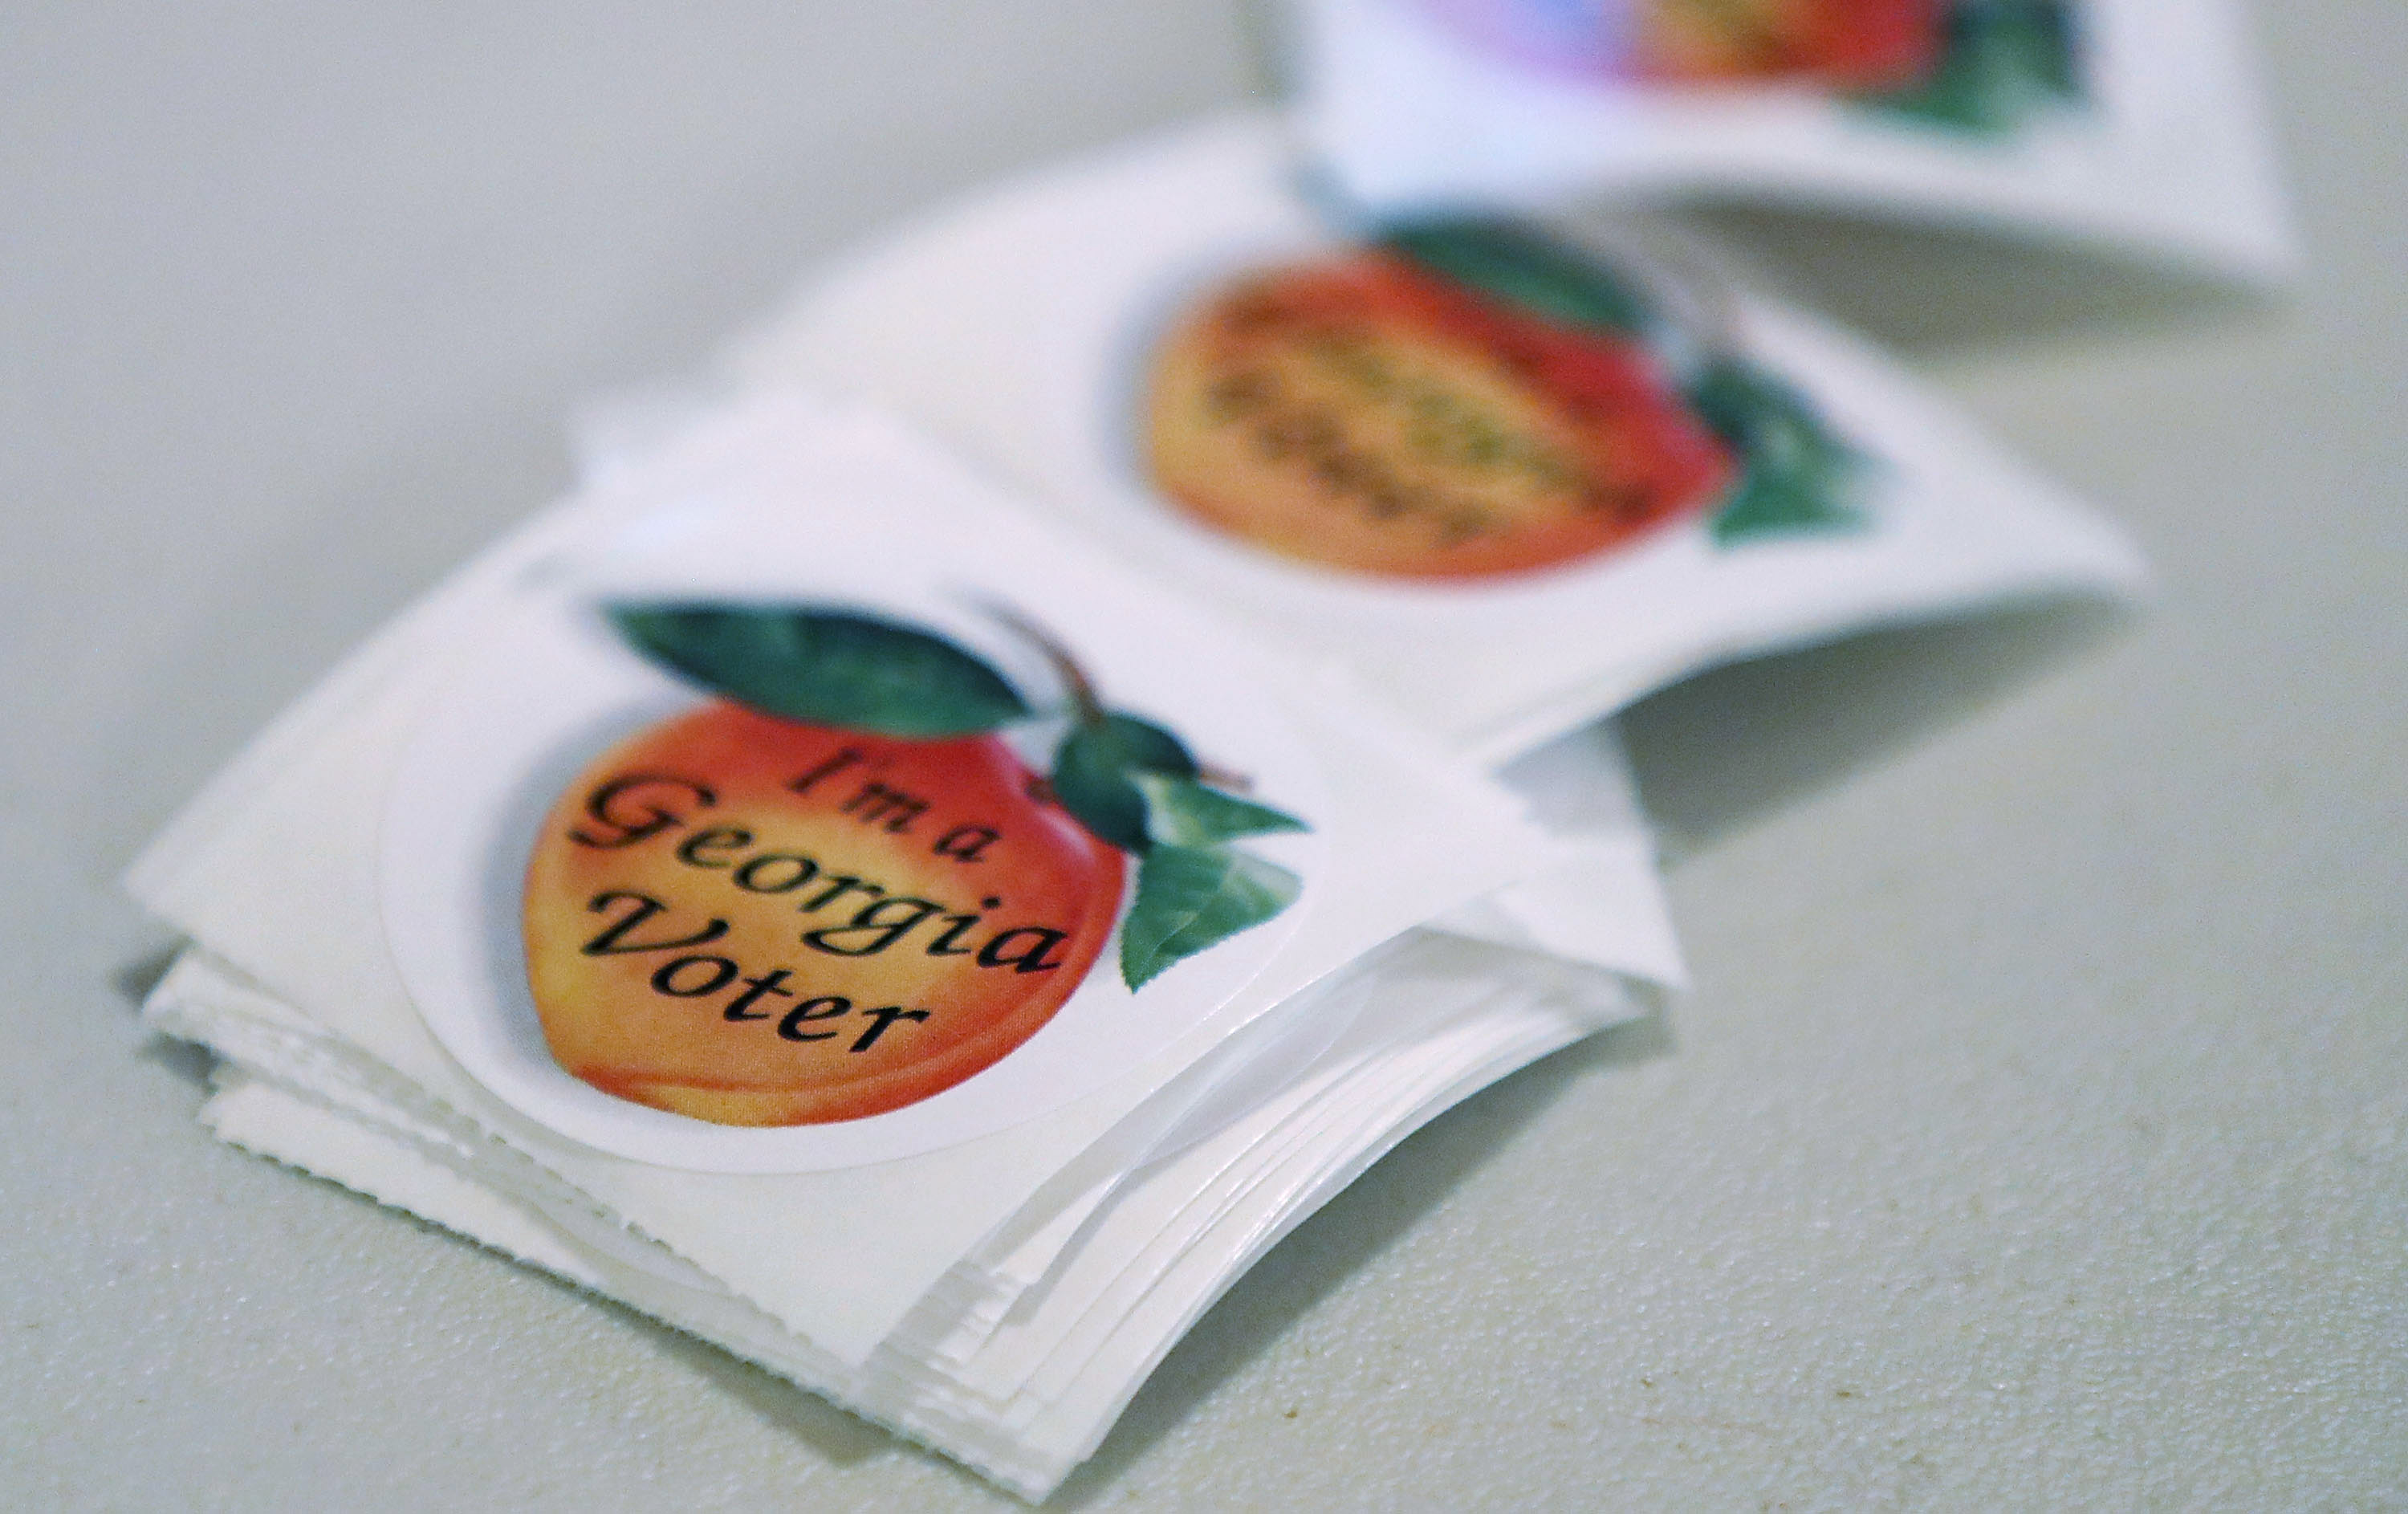 Voters Go To The Polls In GA 6th Congressional District Race